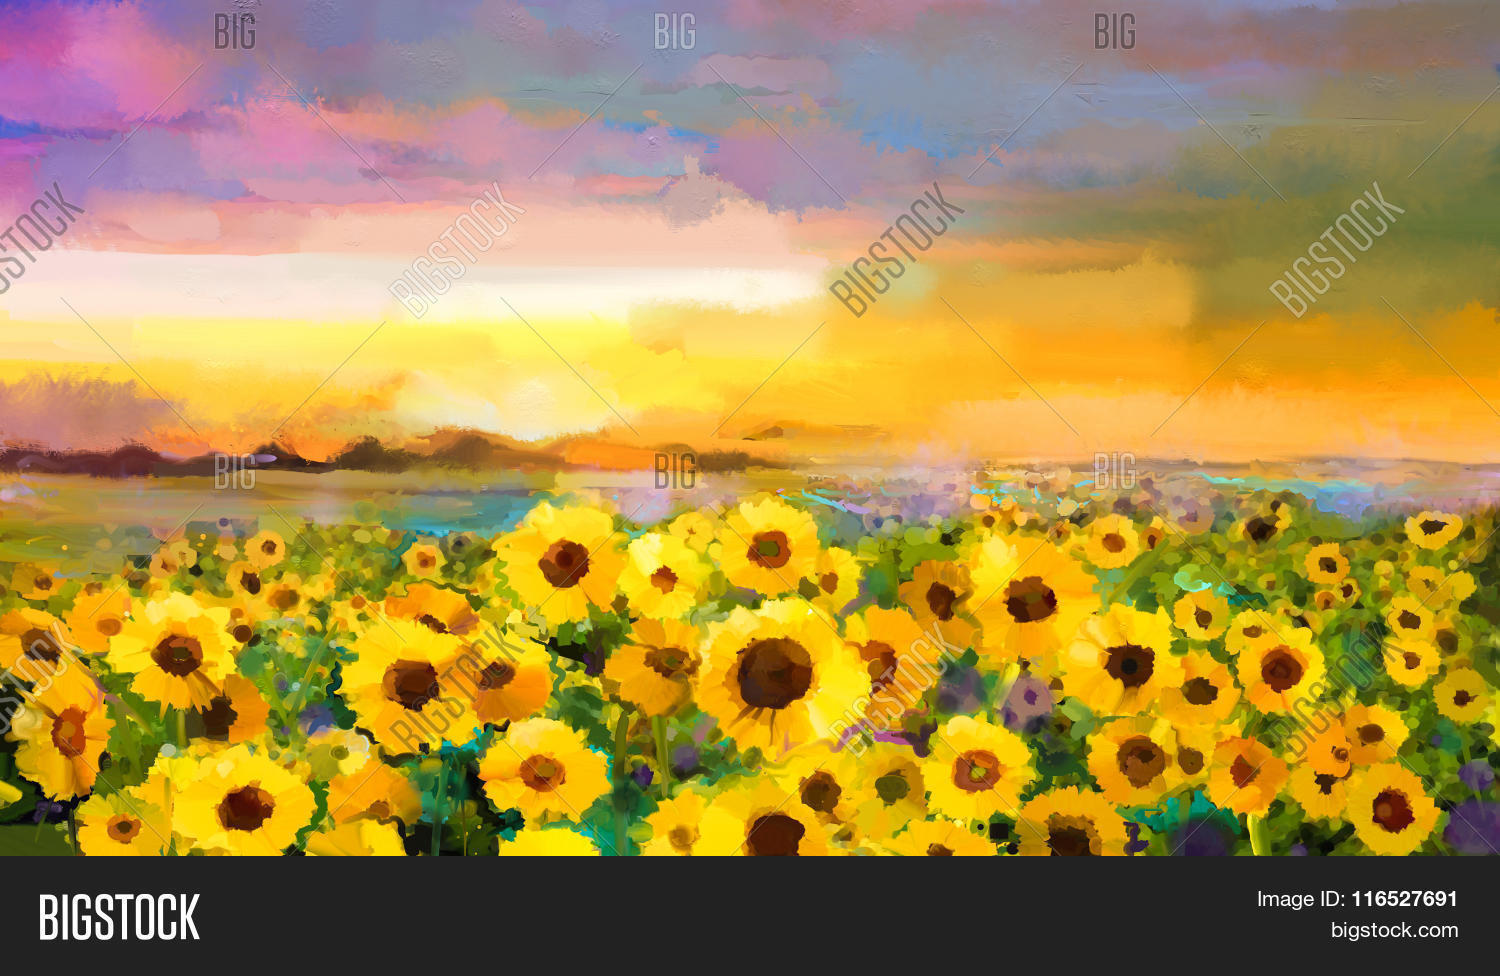 Oil Painting Yellow Image Photo Free Trial Bigstock